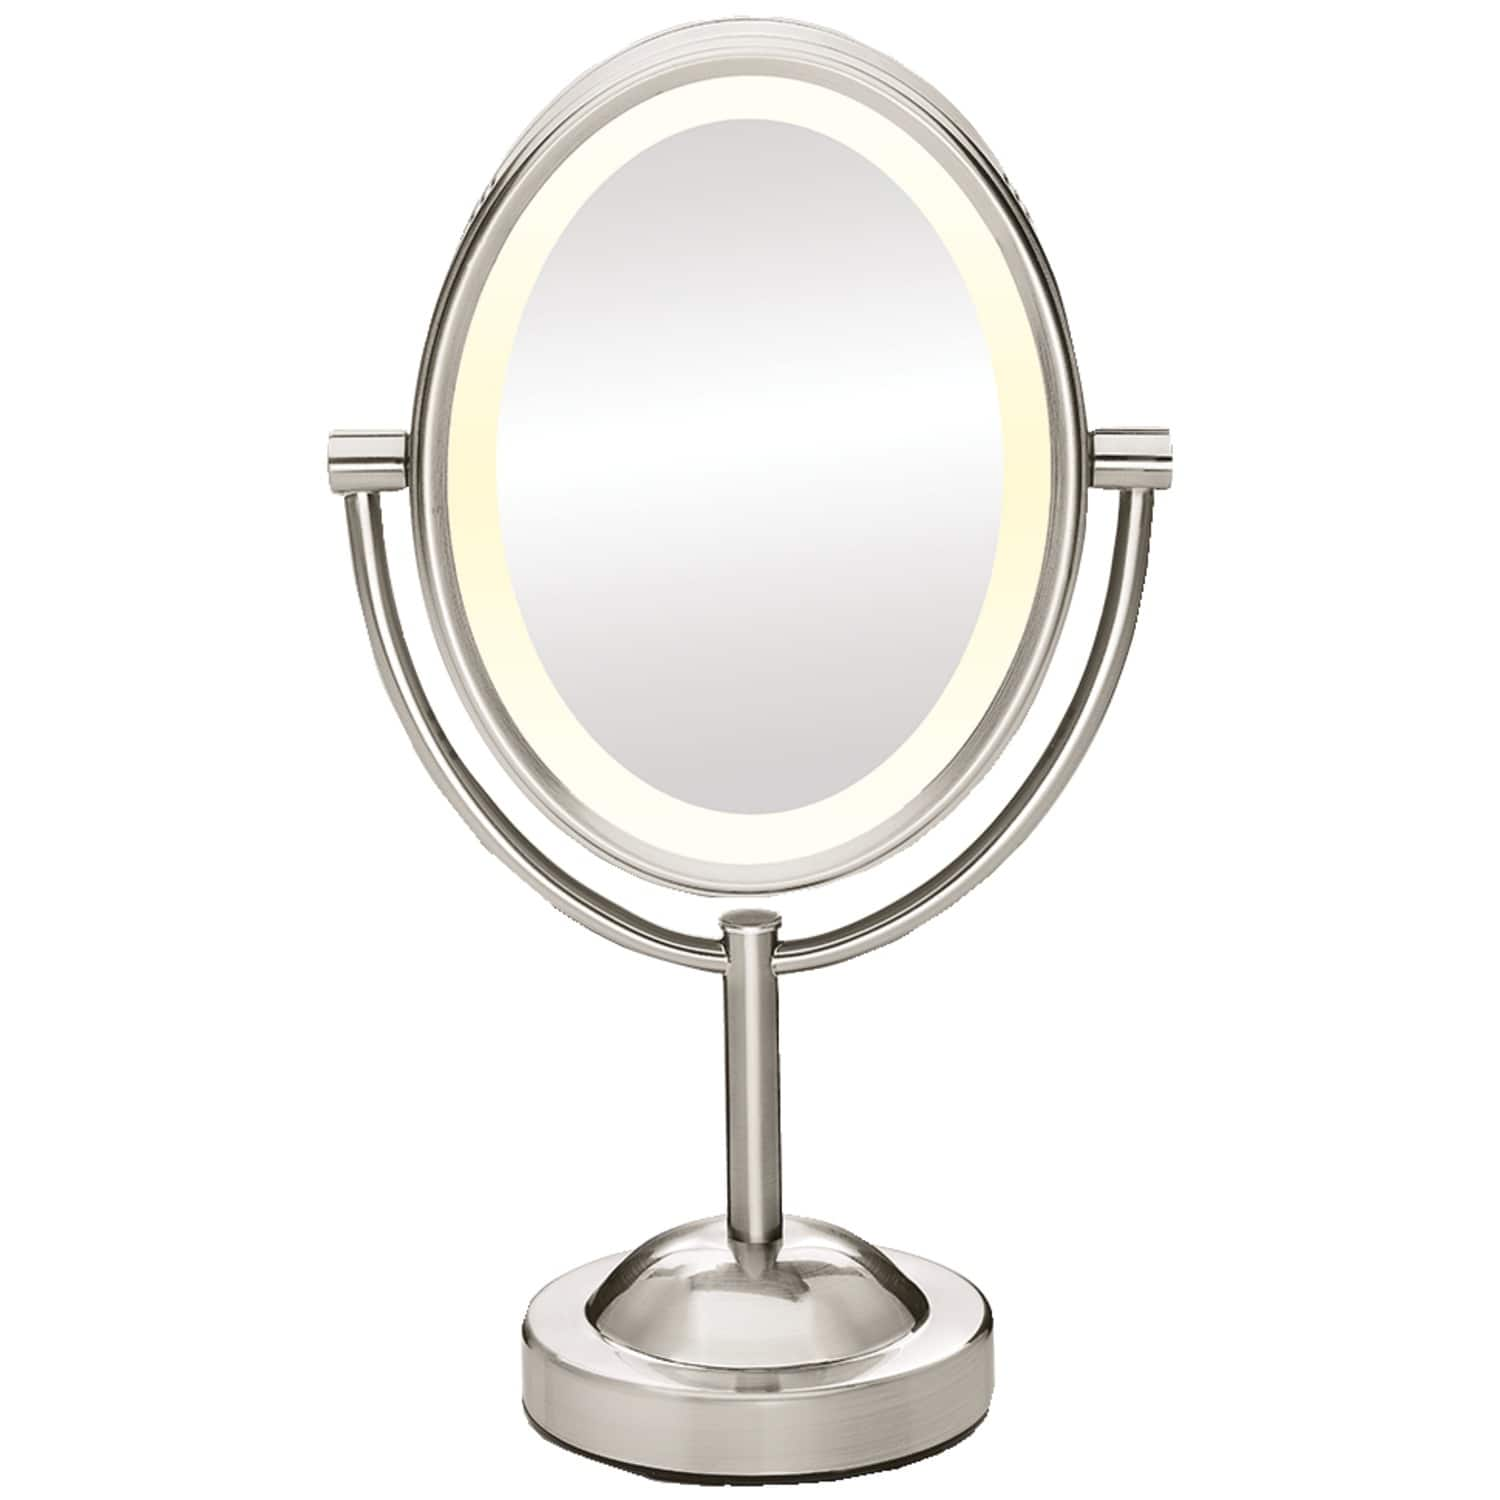 Conair Double-Sided Lighted Mirror with 7x Magnification (Chrome or Nickel Finish) for $19.99 at Amazon